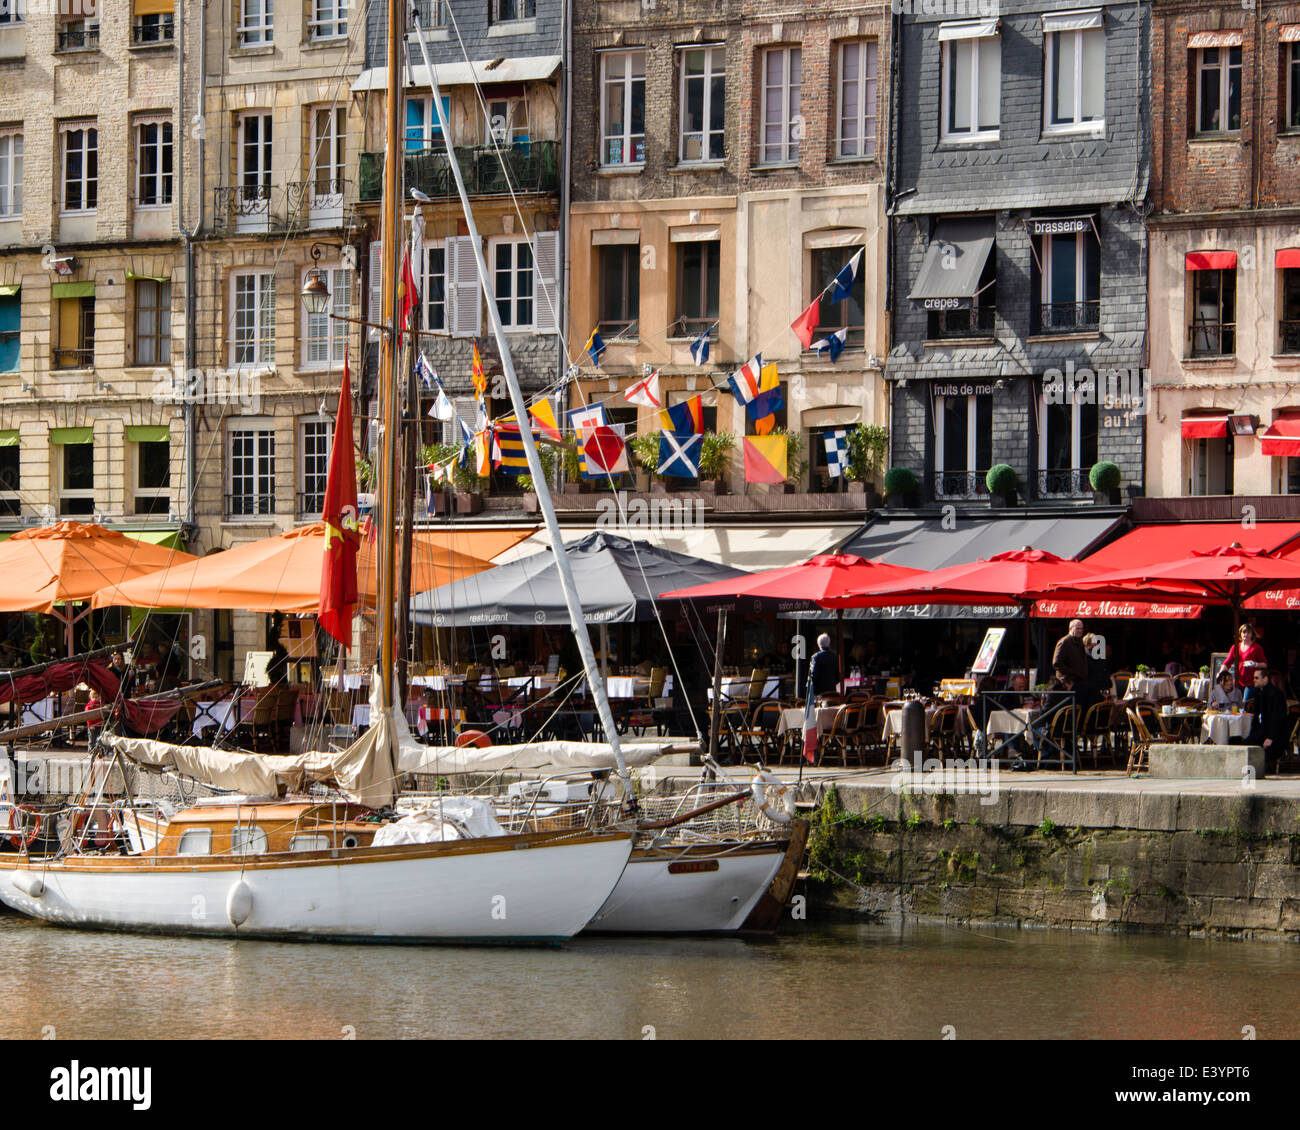 Sailboats docked along Vieux Bassin in front of bars and cafes along Quai Ste. Catherine, Honfleur, Normandy, France Stock Photo